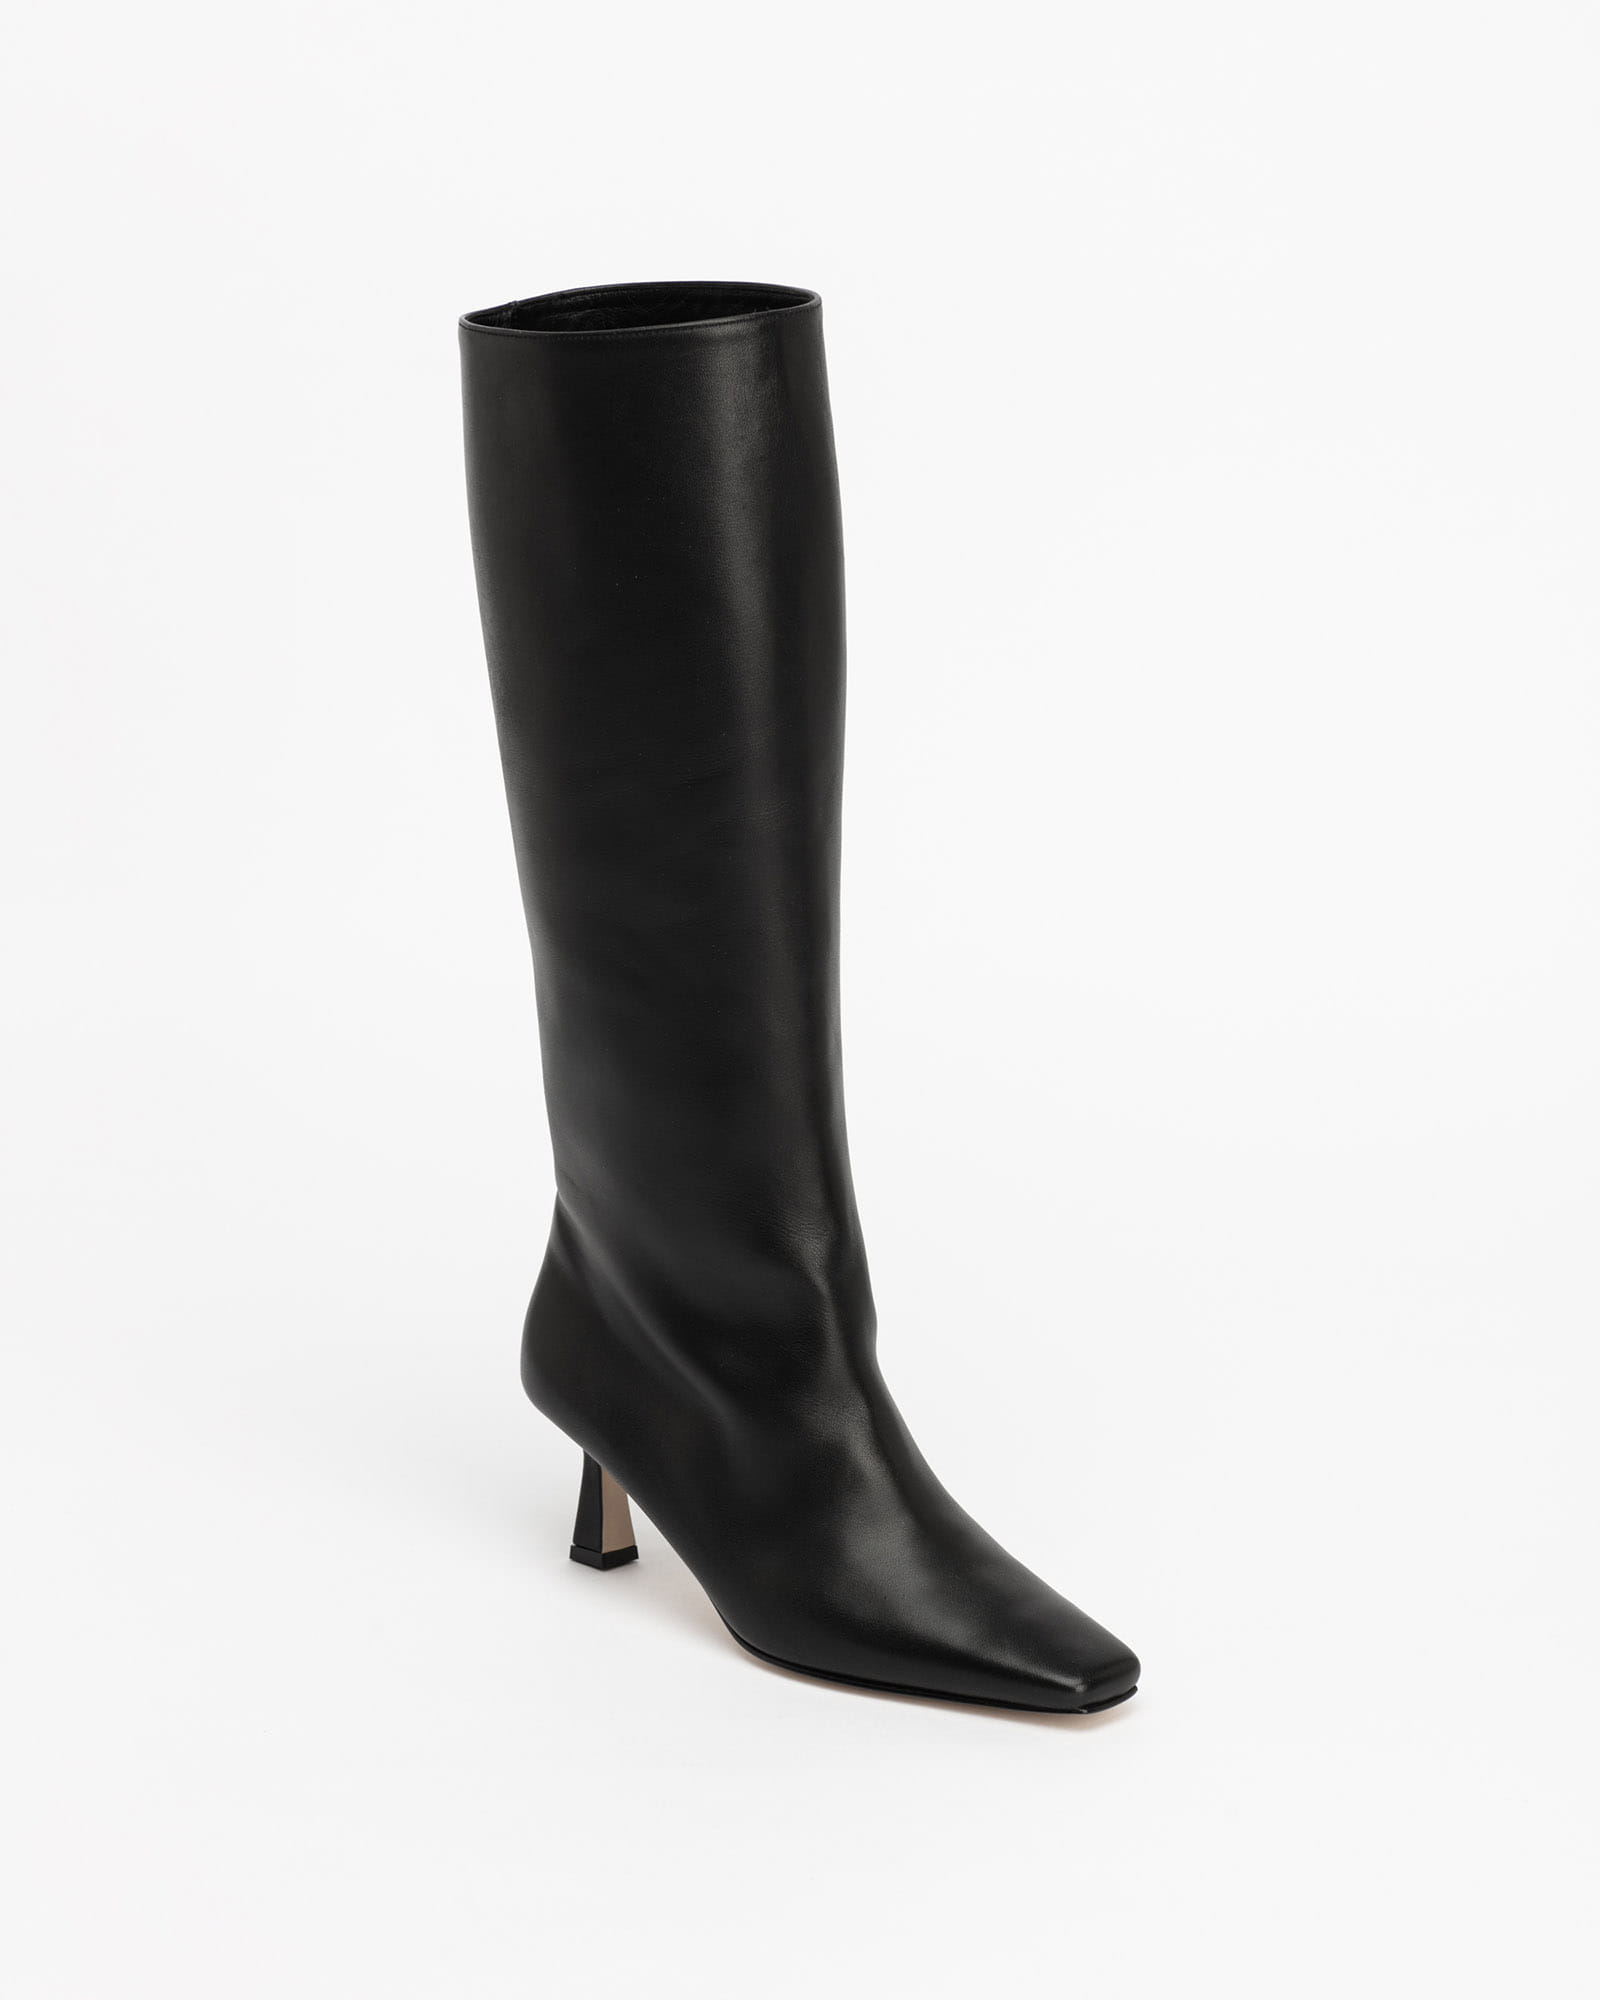 LOB Boots in Regular Black